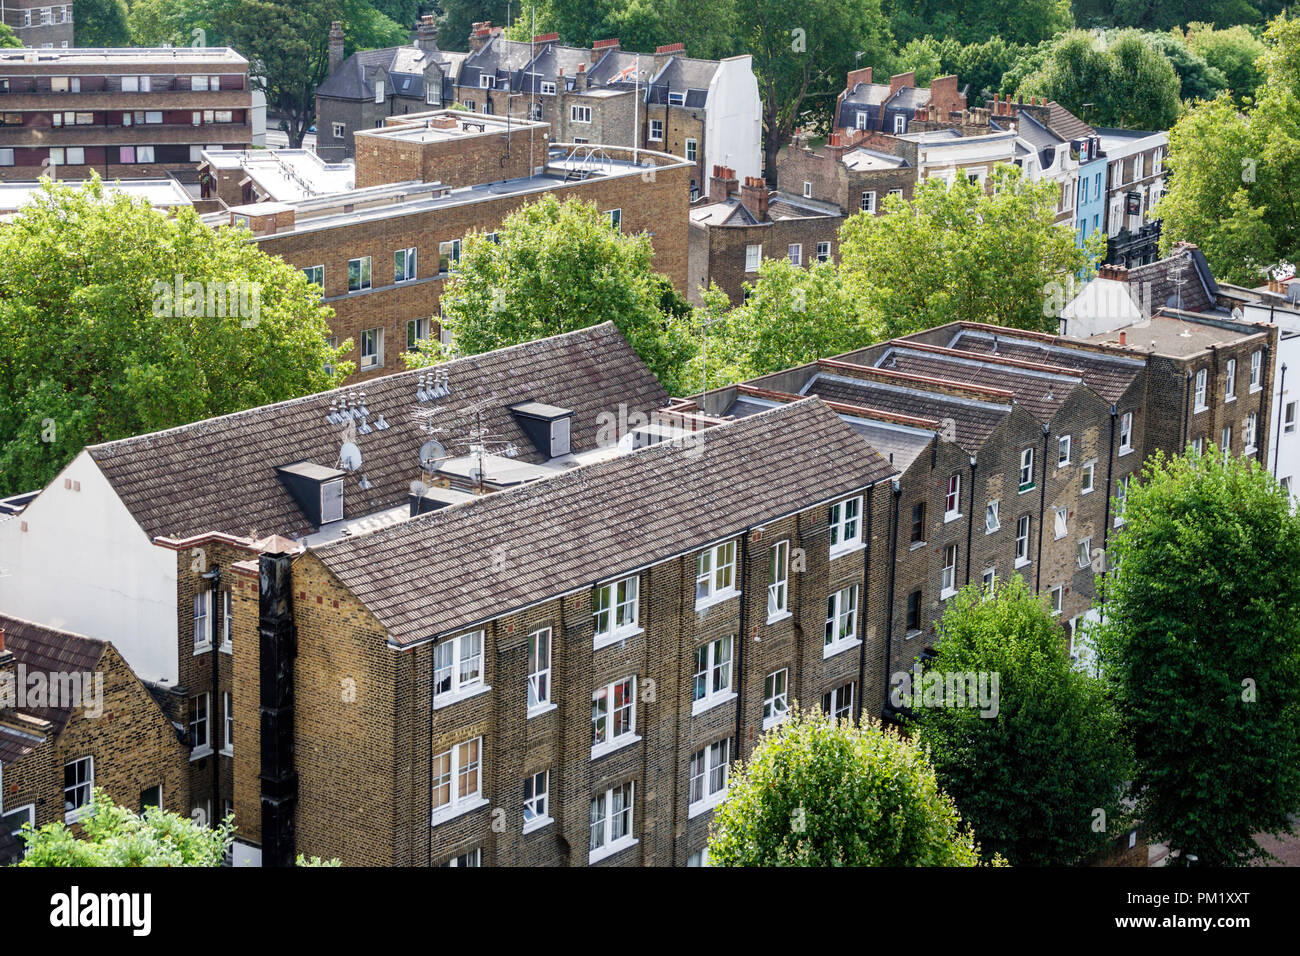 London England Great Britain United Kingdom South Bank buildings flats rooftops trees overhead view - Stock Image